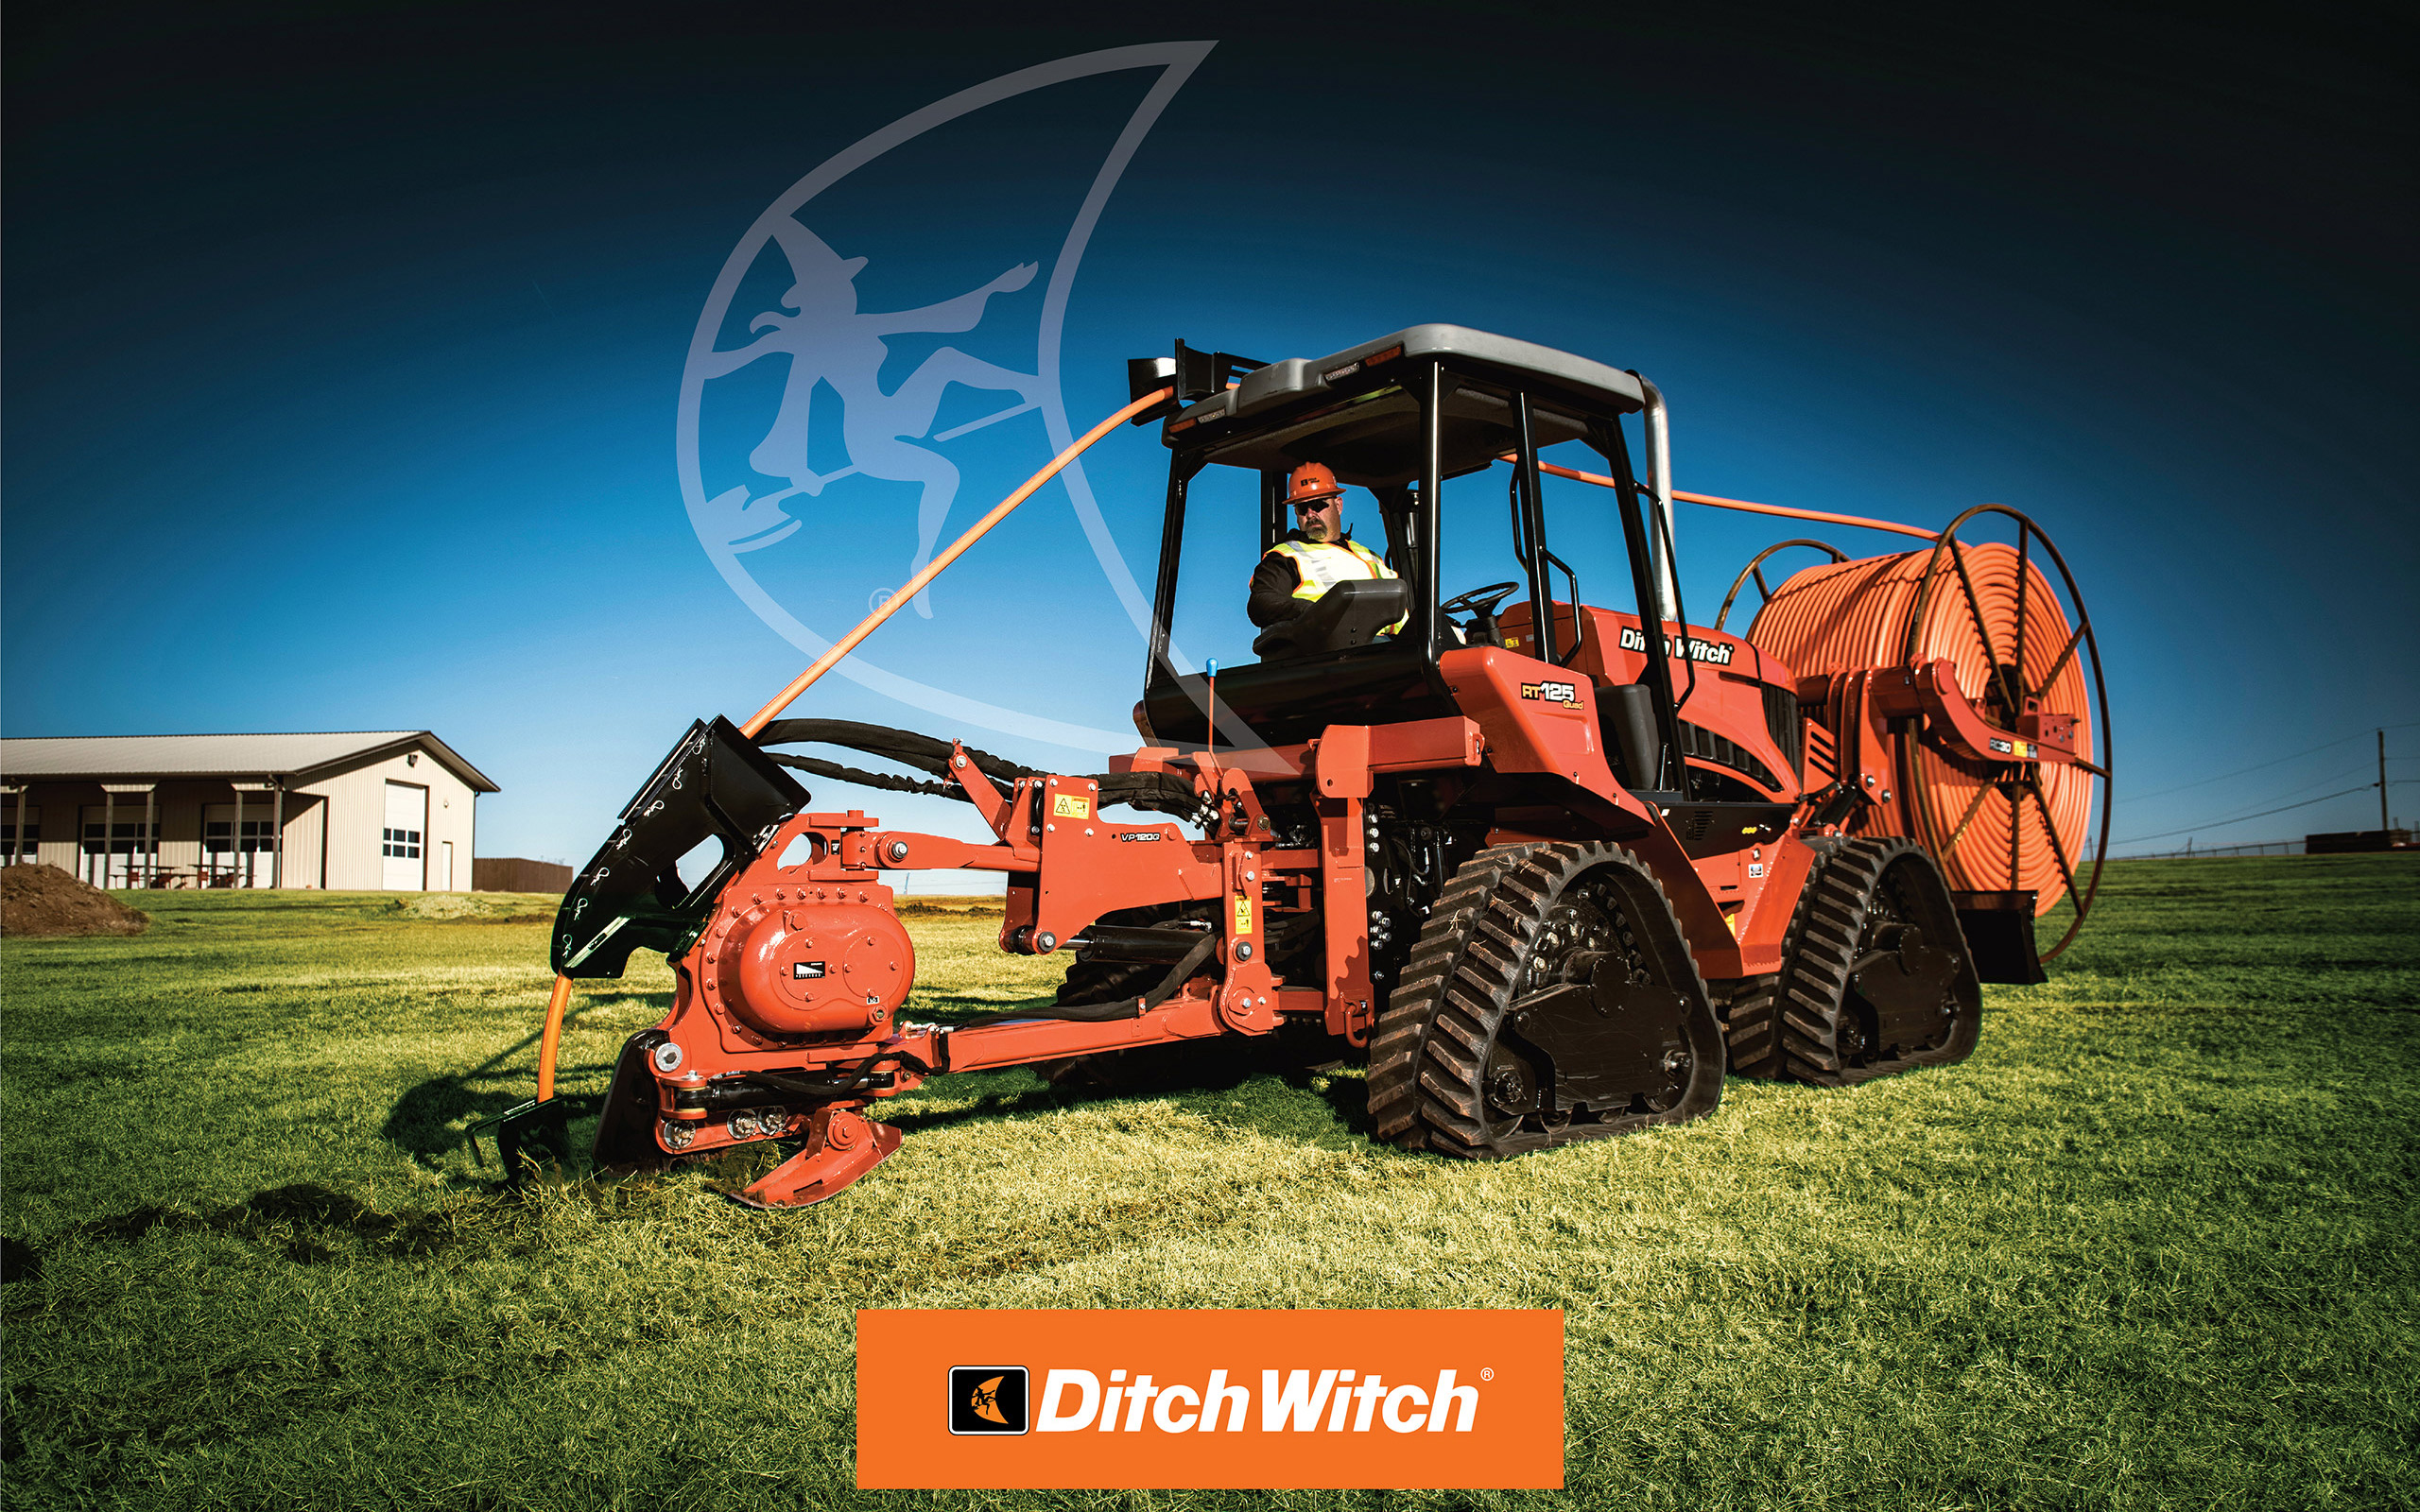 ditch witch manual 3500 free download